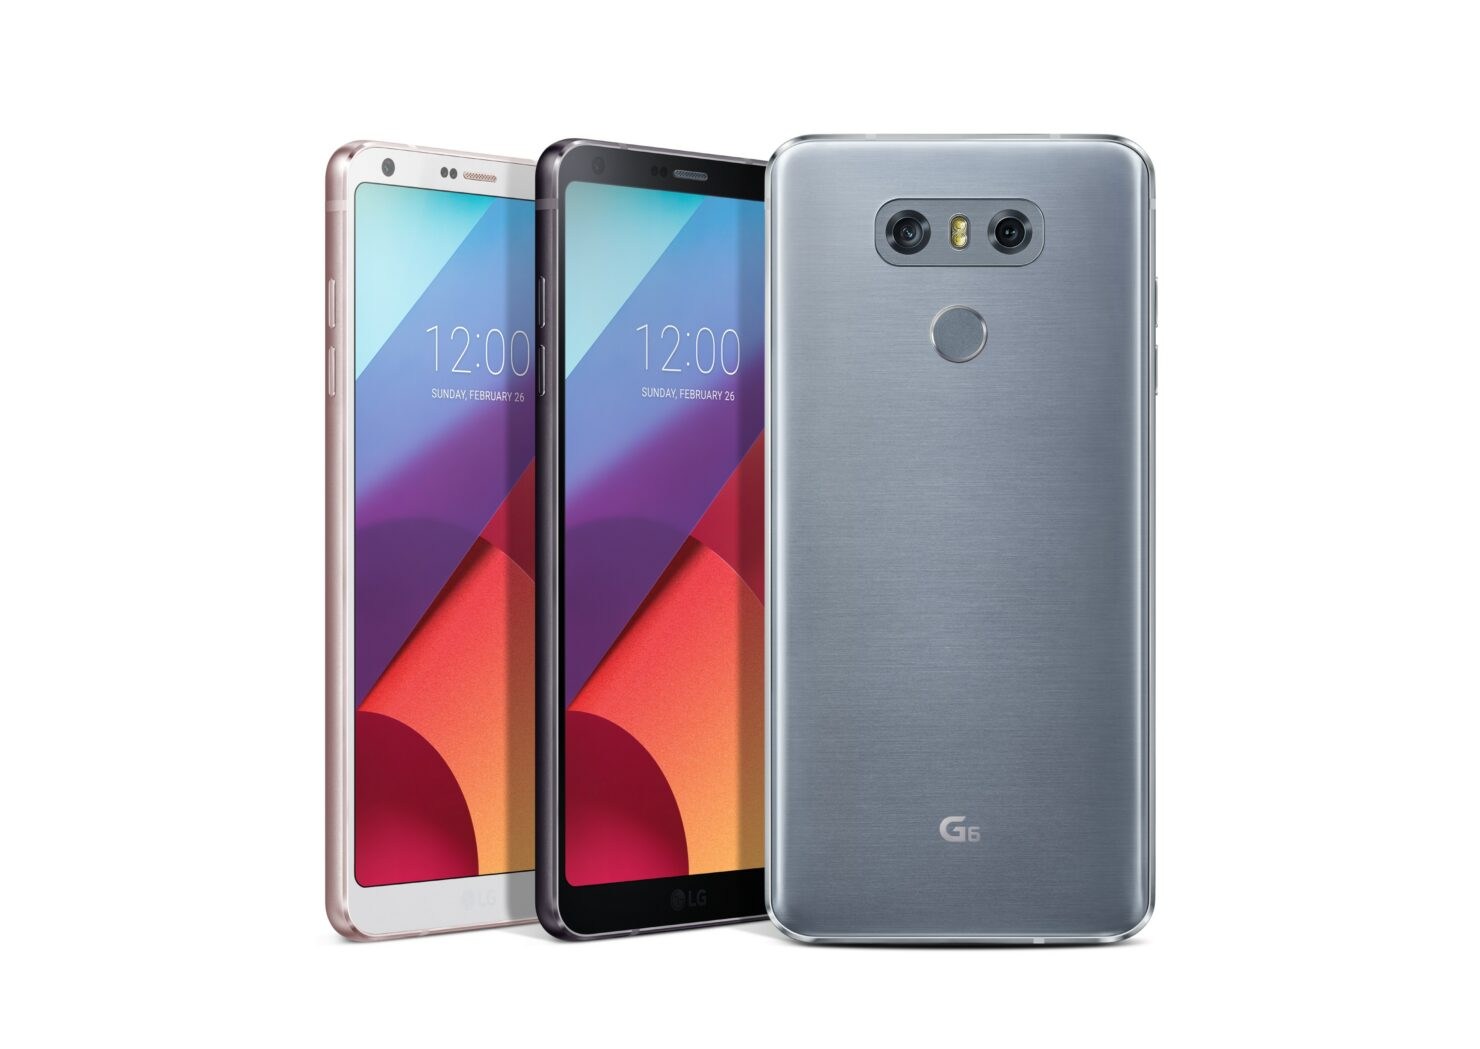 LG G6 Is Already a Hit as Less Than Half a Million Pre-Orders Have Been Registered